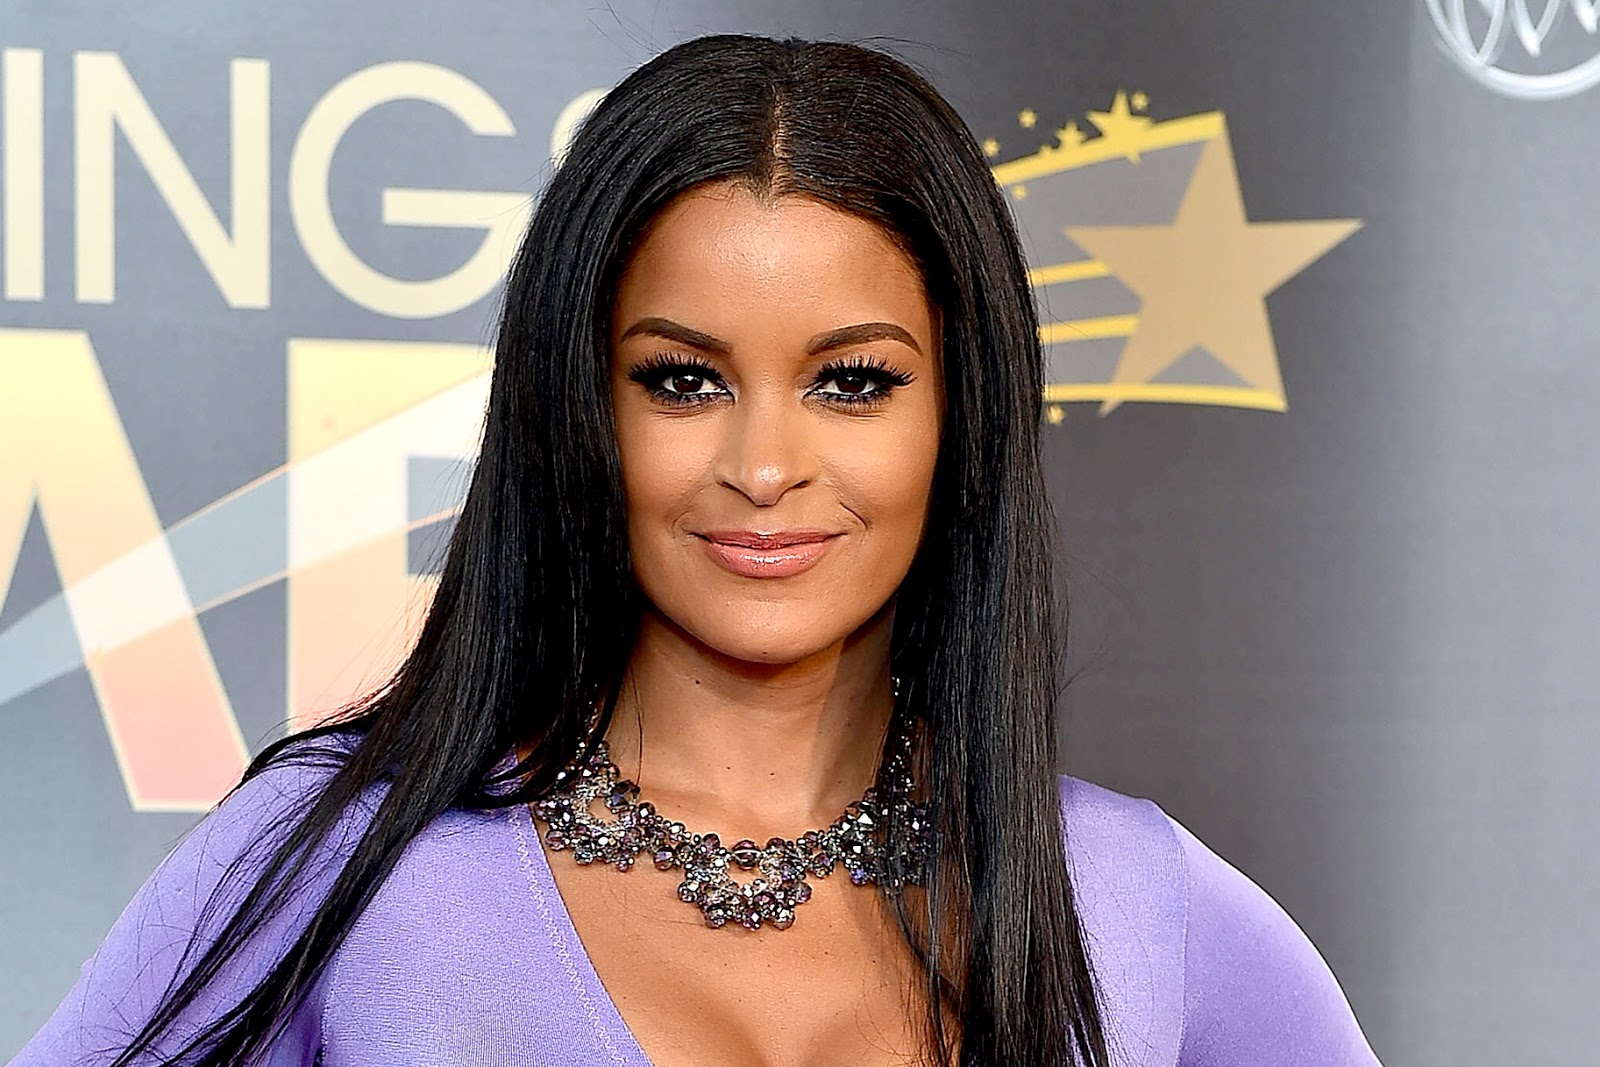 best website 4c189 2fba4 Claudia Jordan is the epitome of all around talent as she is a model,  actress and TV personality and host. Her list of accomplishments include  winning Miss ...